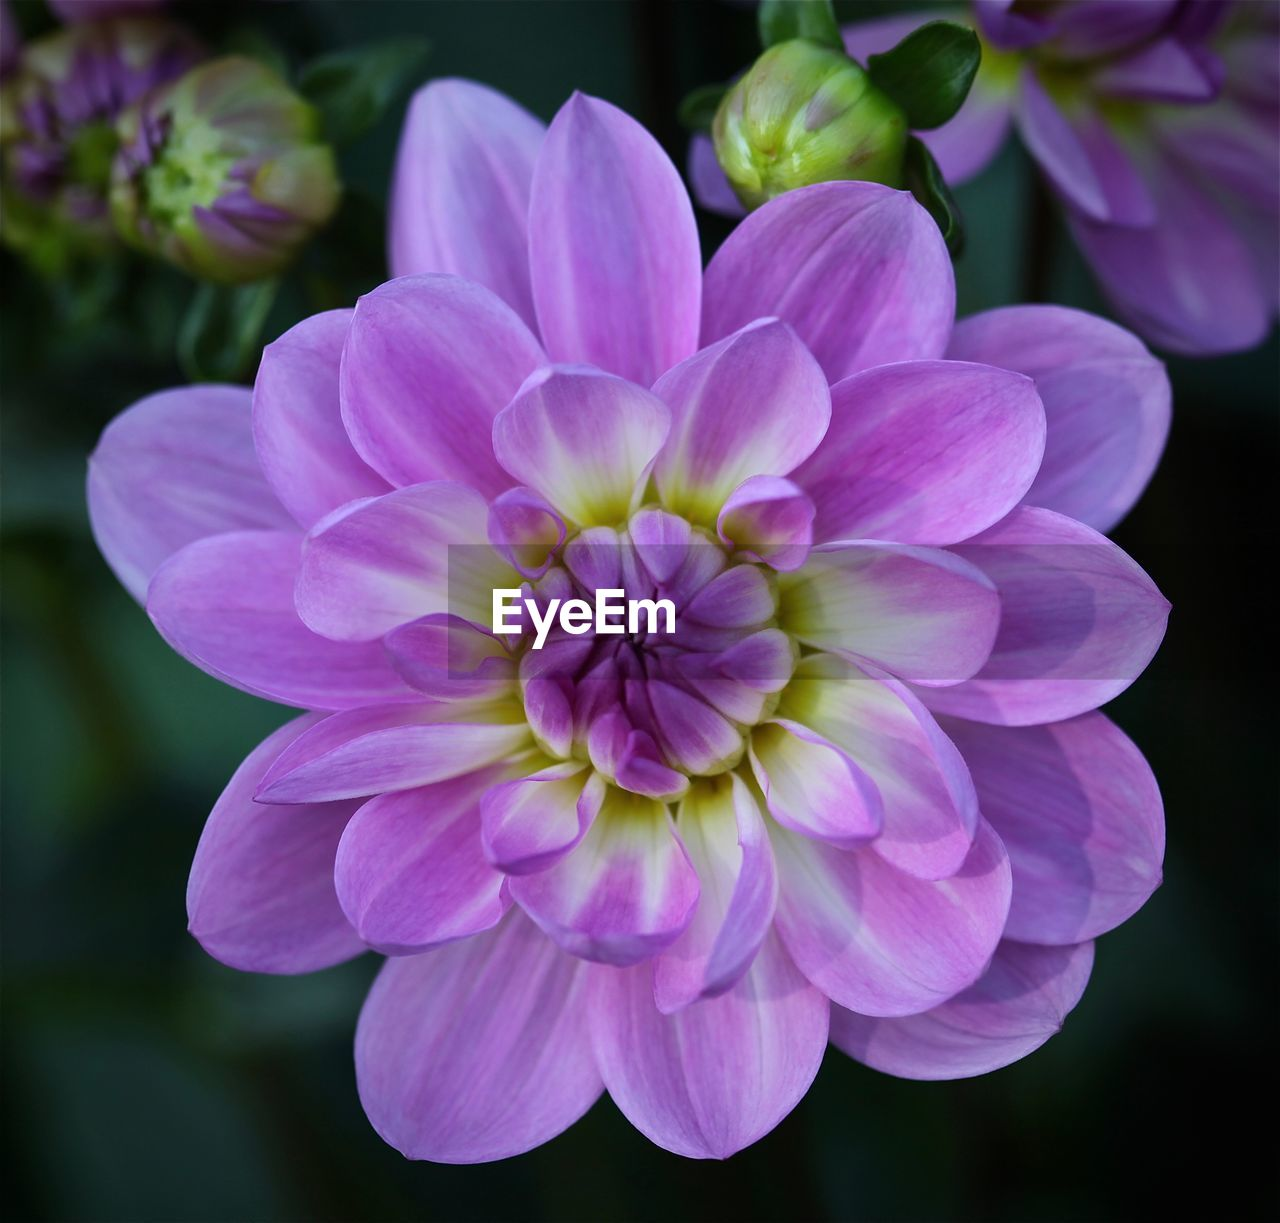 flowering plant, flower, fragility, vulnerability, petal, freshness, plant, beauty in nature, flower head, inflorescence, close-up, pink color, growth, nature, no people, focus on foreground, dahlia, day, purple, outdoors, pollen